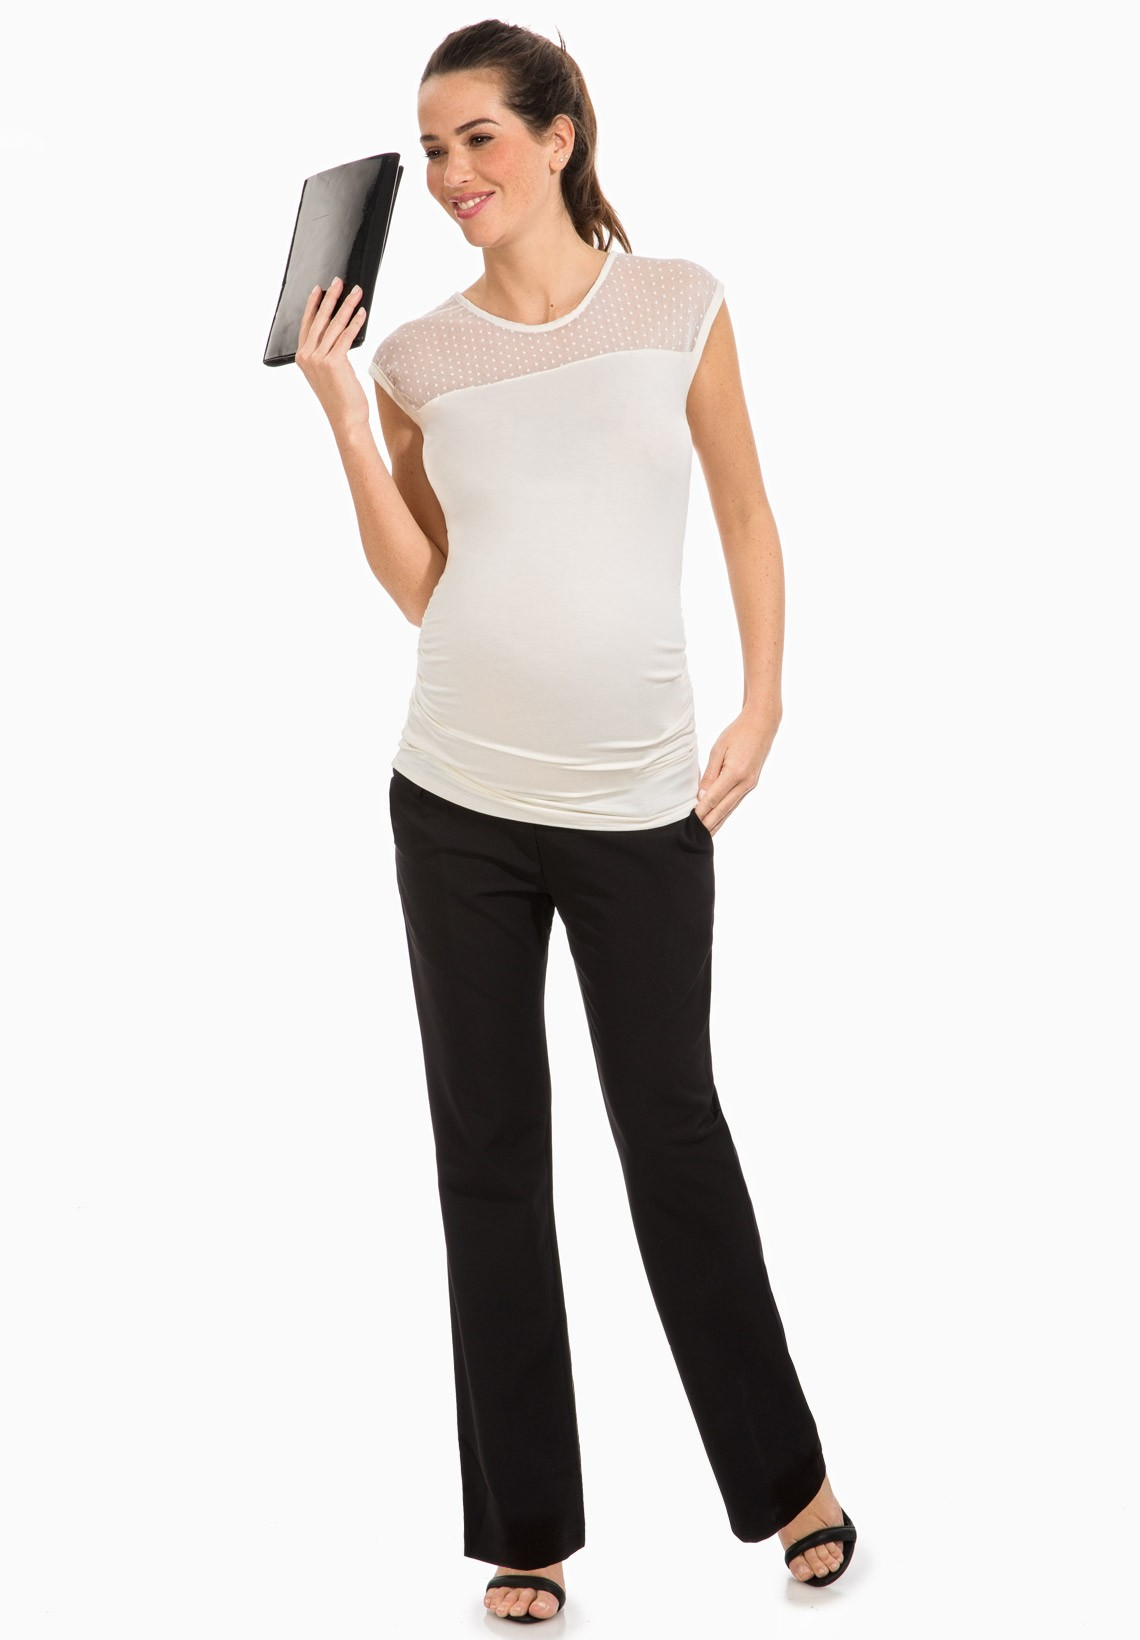 Discover Maternity trousers & yoga pants at ASOS. From Maternity capri leggings & trousers to all your pregnancy style needs at ASOS.